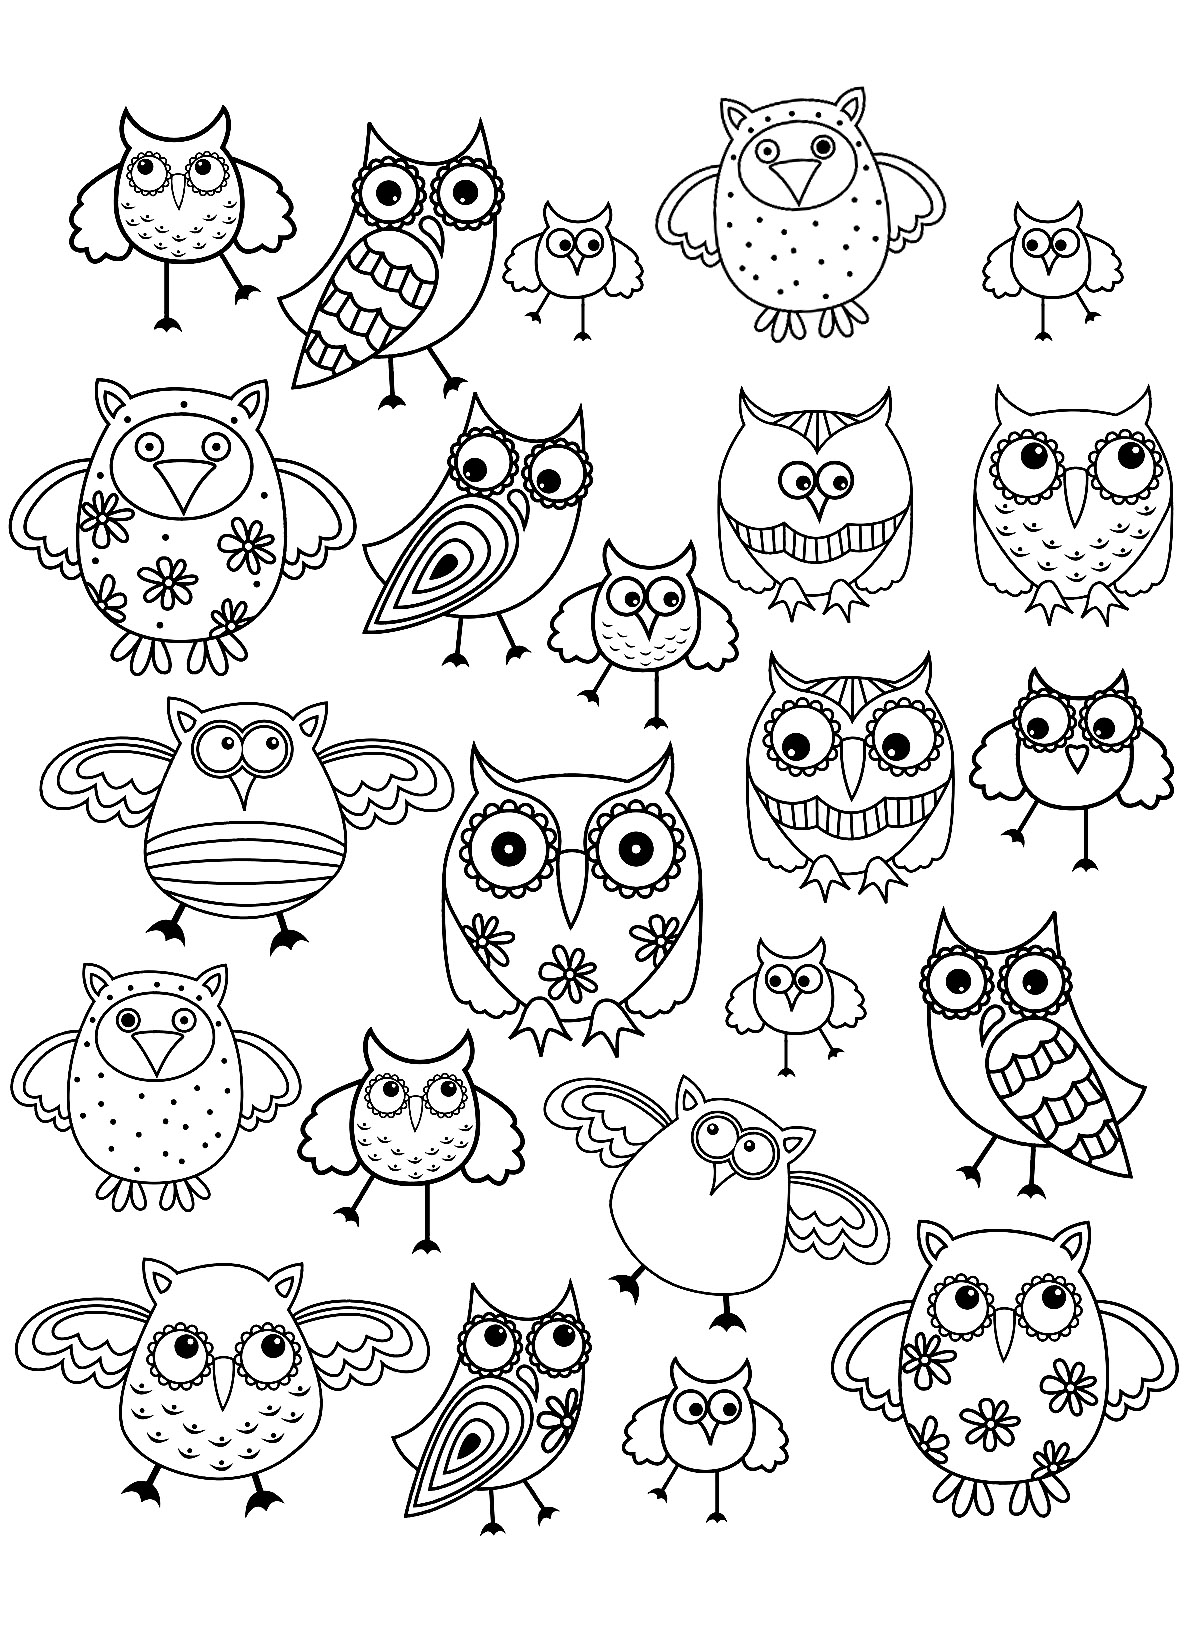 Doodle art free to color for kids - Doodle Art Kids Coloring Pages